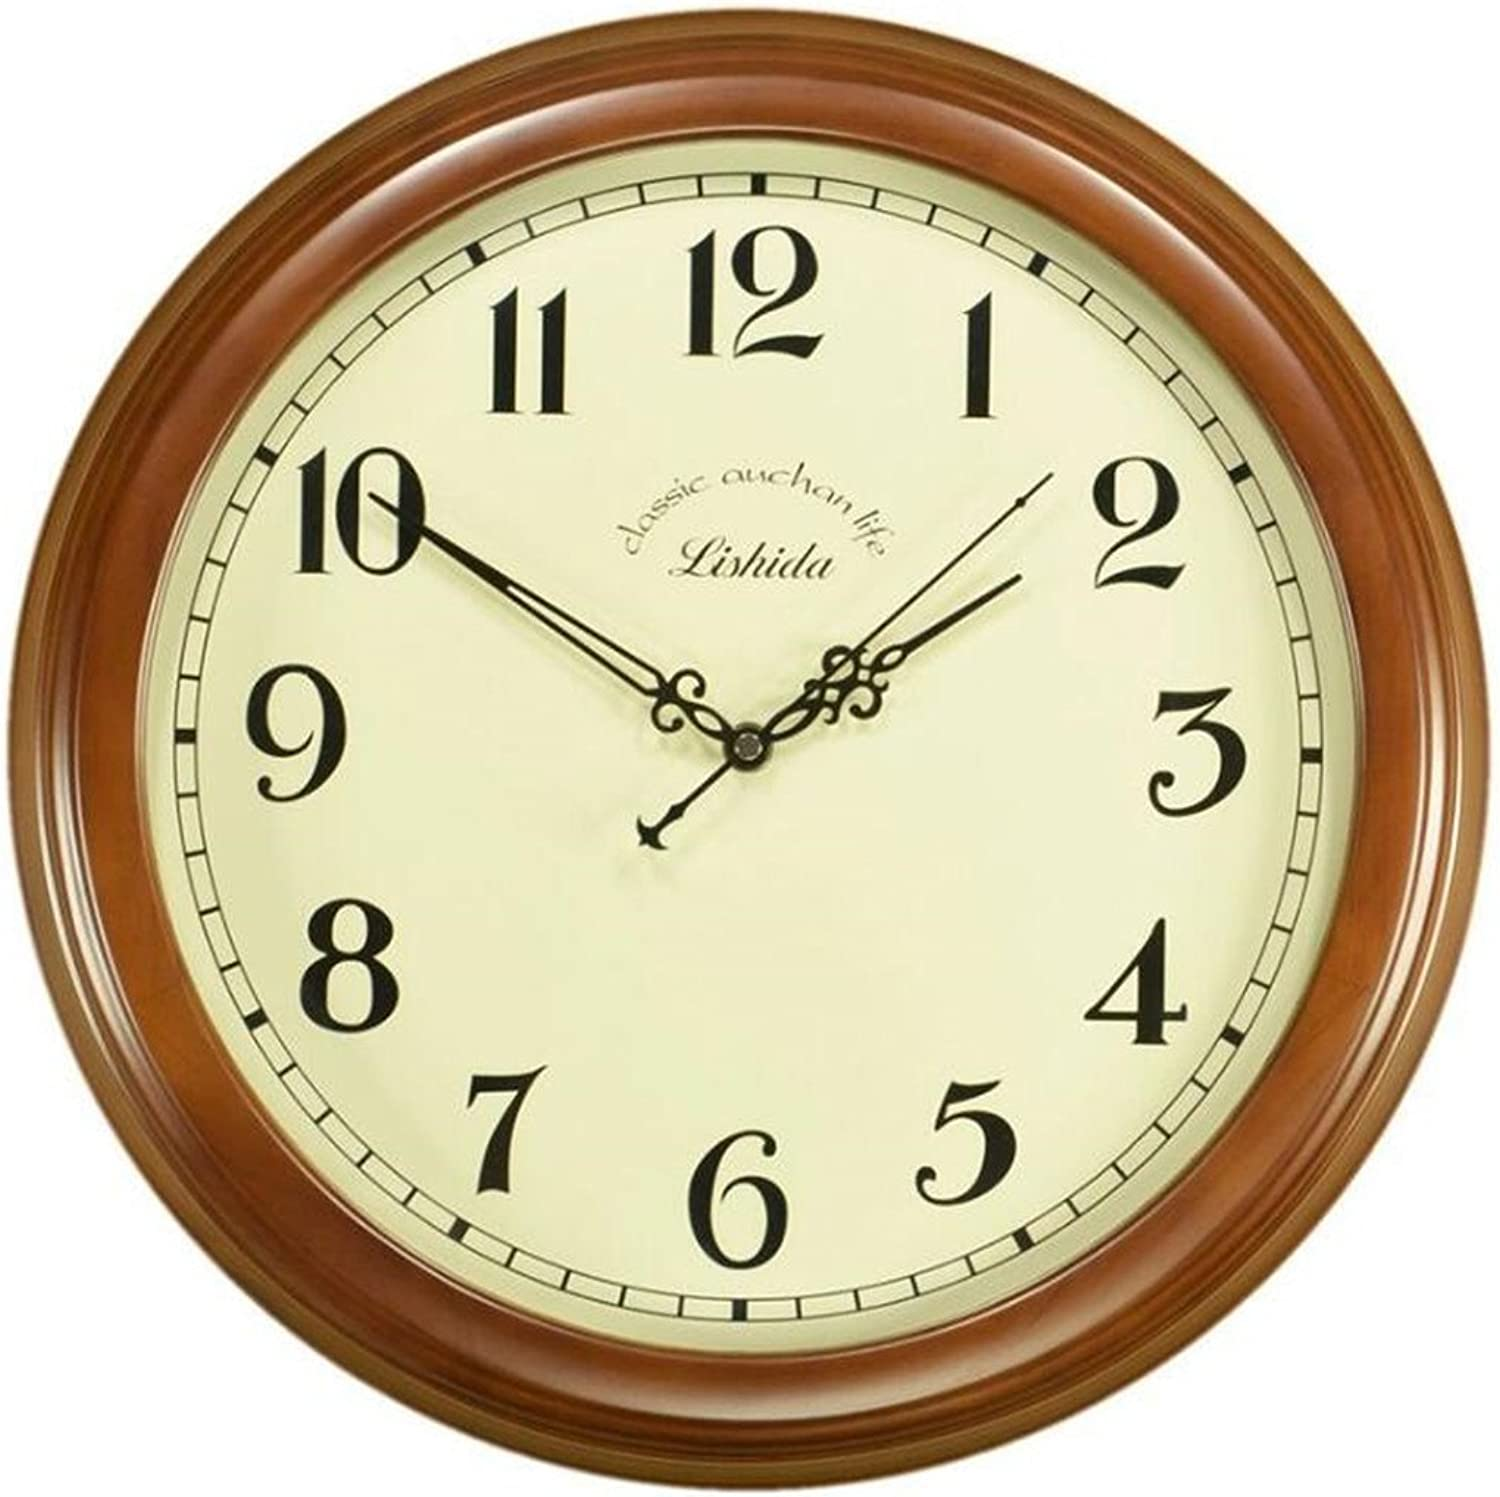 American Retro Simple Wall Clock Mute Round Wooden Living Room Decoration Table Creative Fashion Quartz Clock Bedroom Wall Clock 14 inch